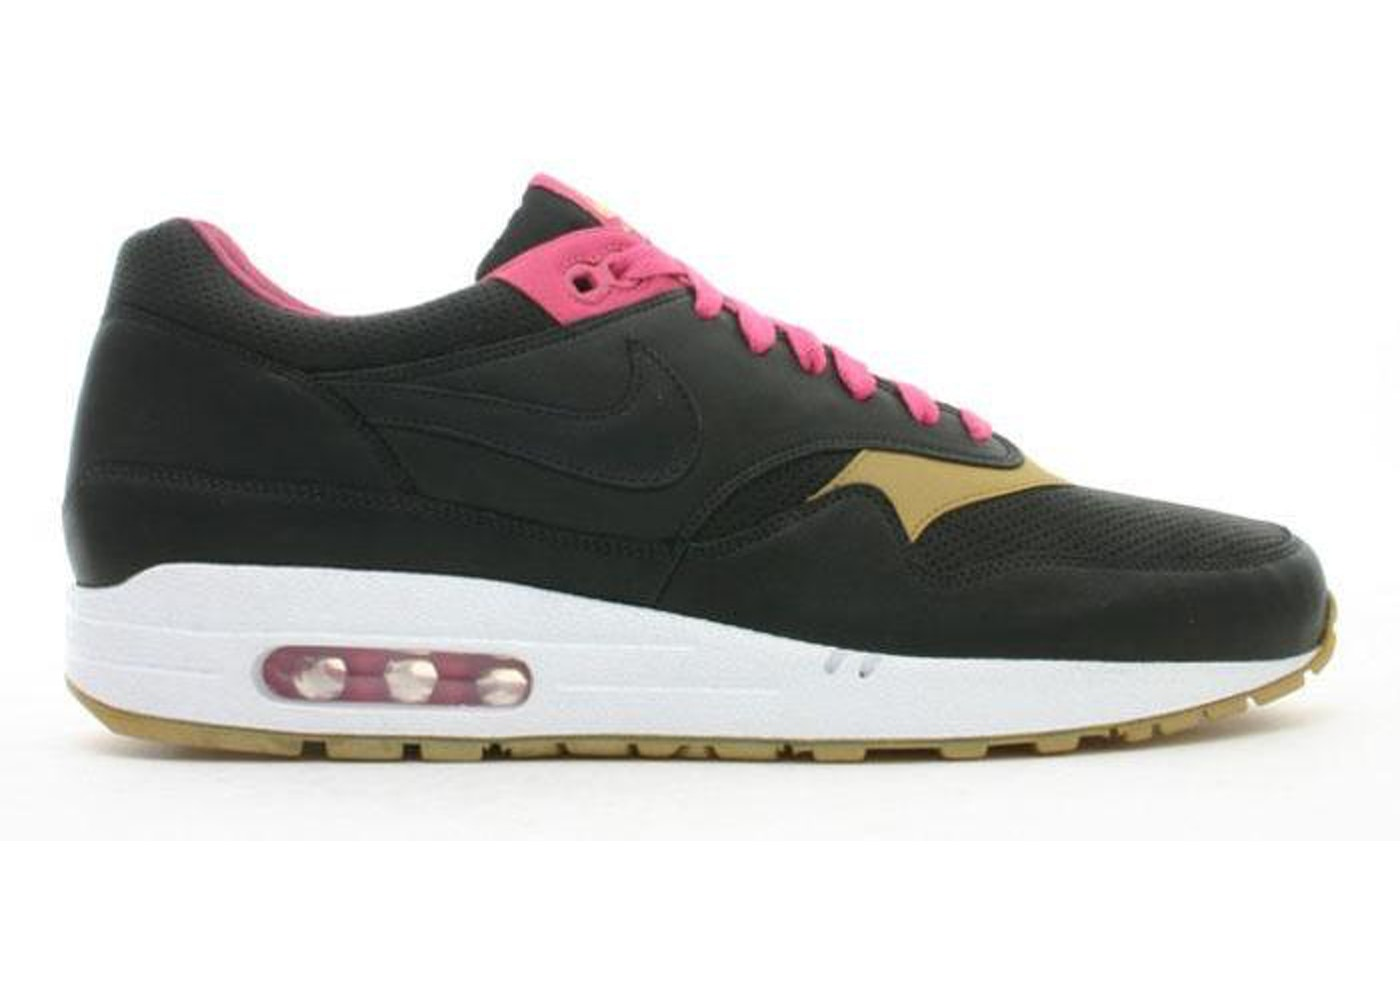 separation shoes b6b82 ab29e Air Max 1 Kid Robot (2005) - 311745-001